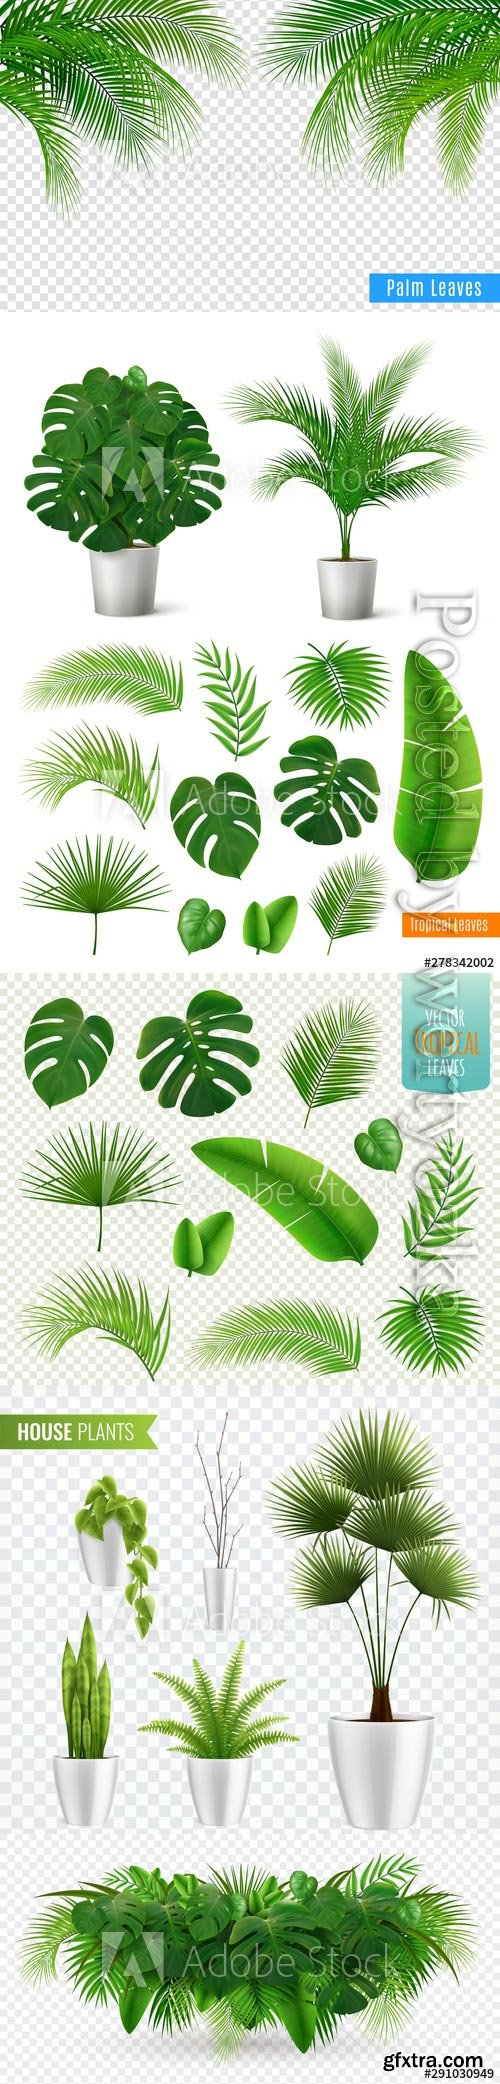 Tropical leaves realistic composition vector illustrations